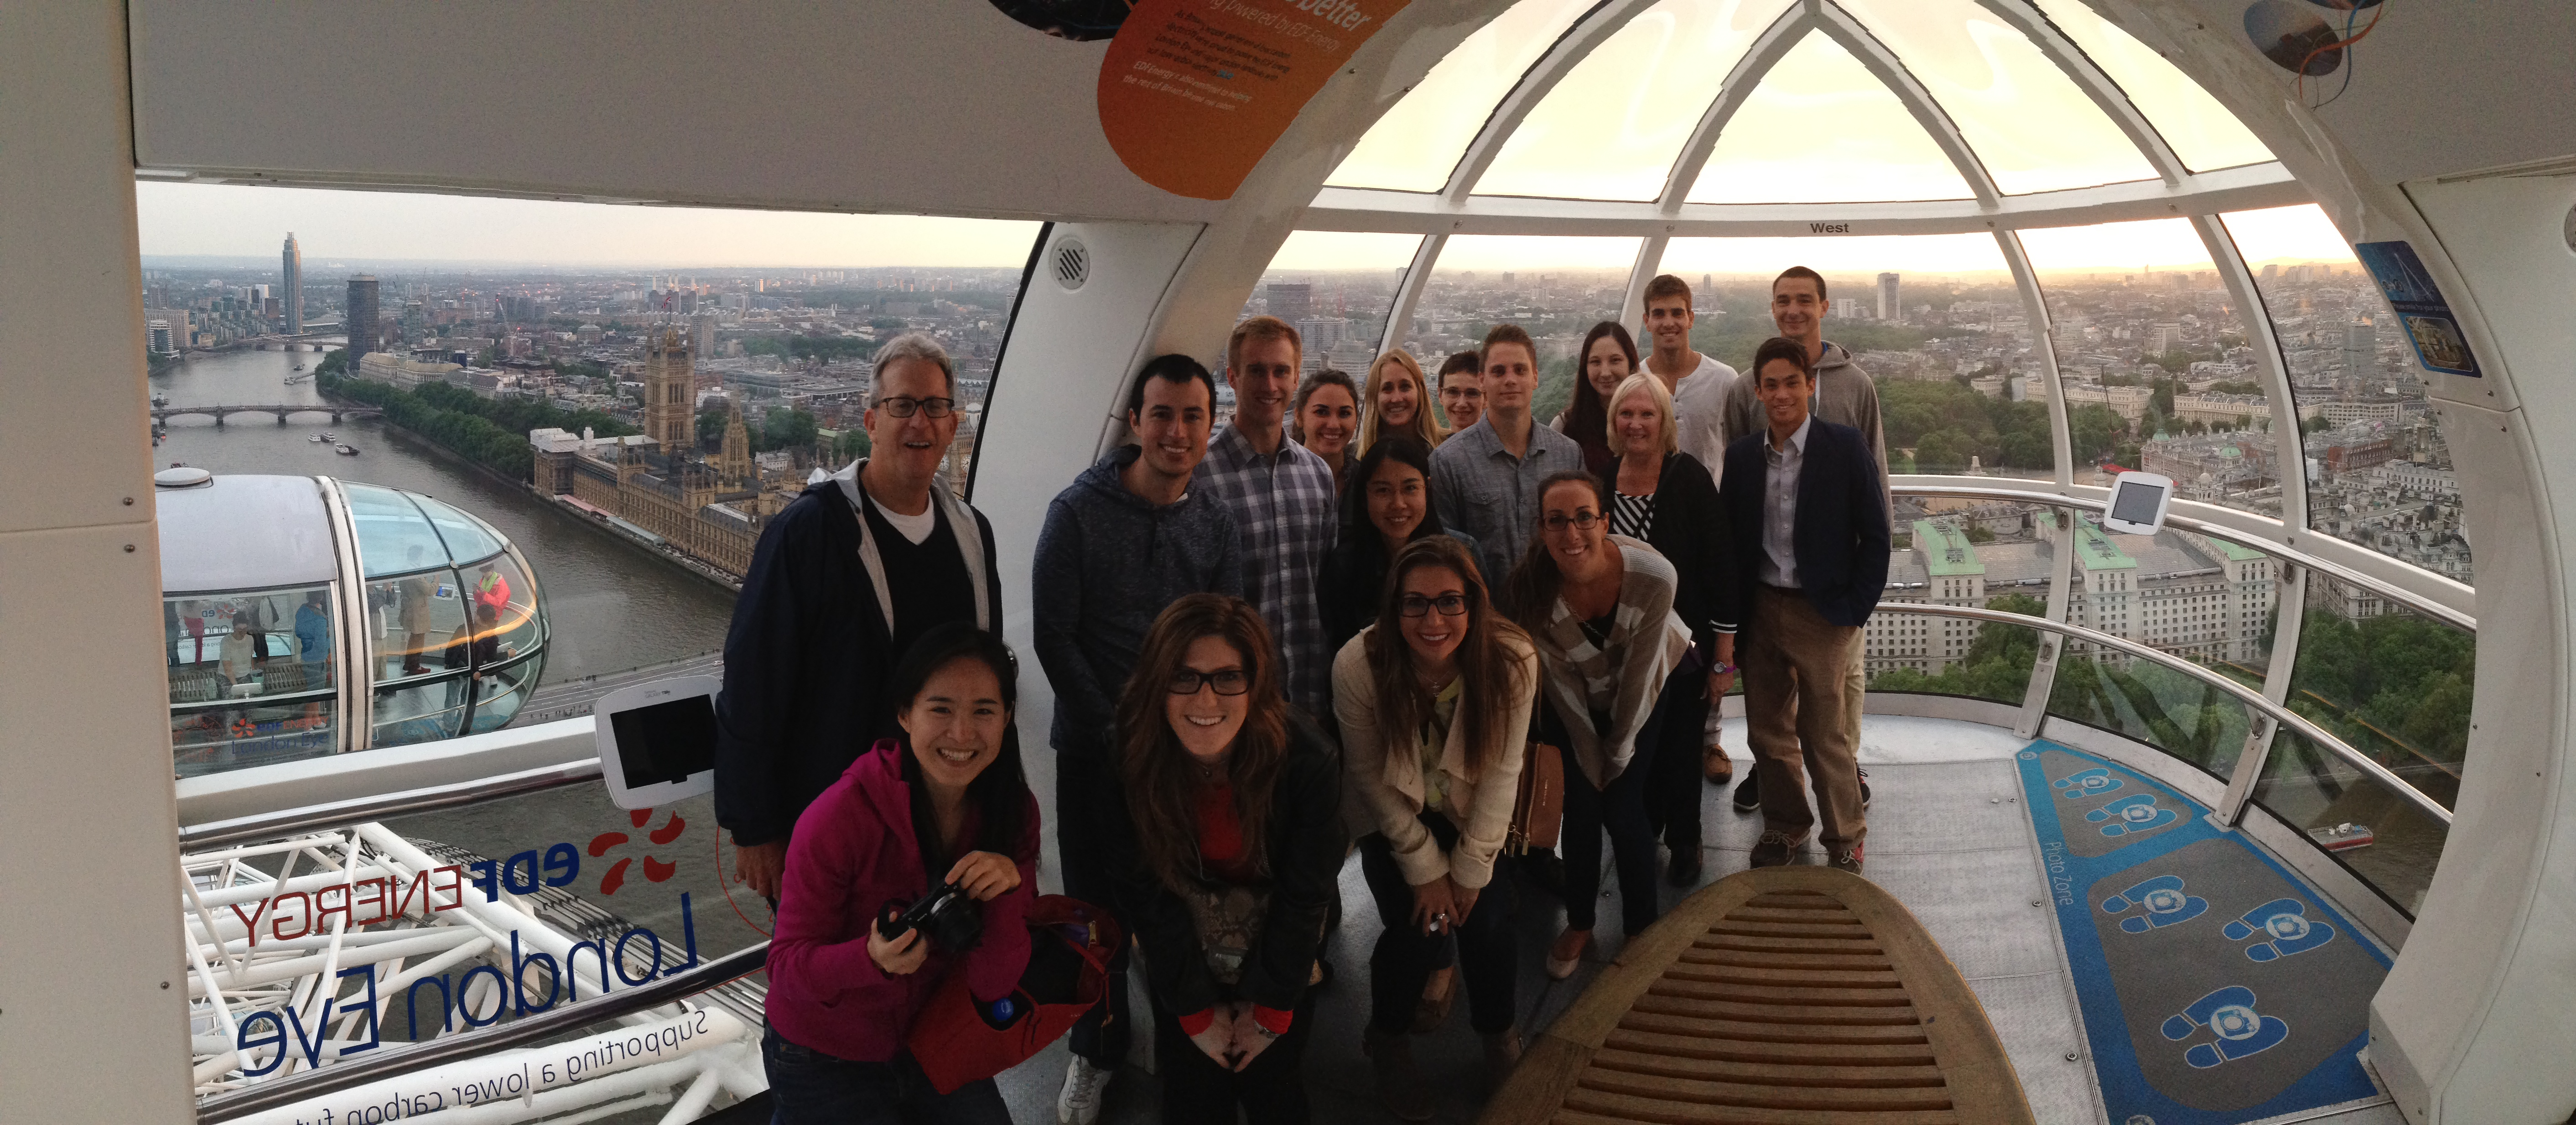 Dr. Pattison and Dr. Judd with Masters of Accounting Students in London Eye